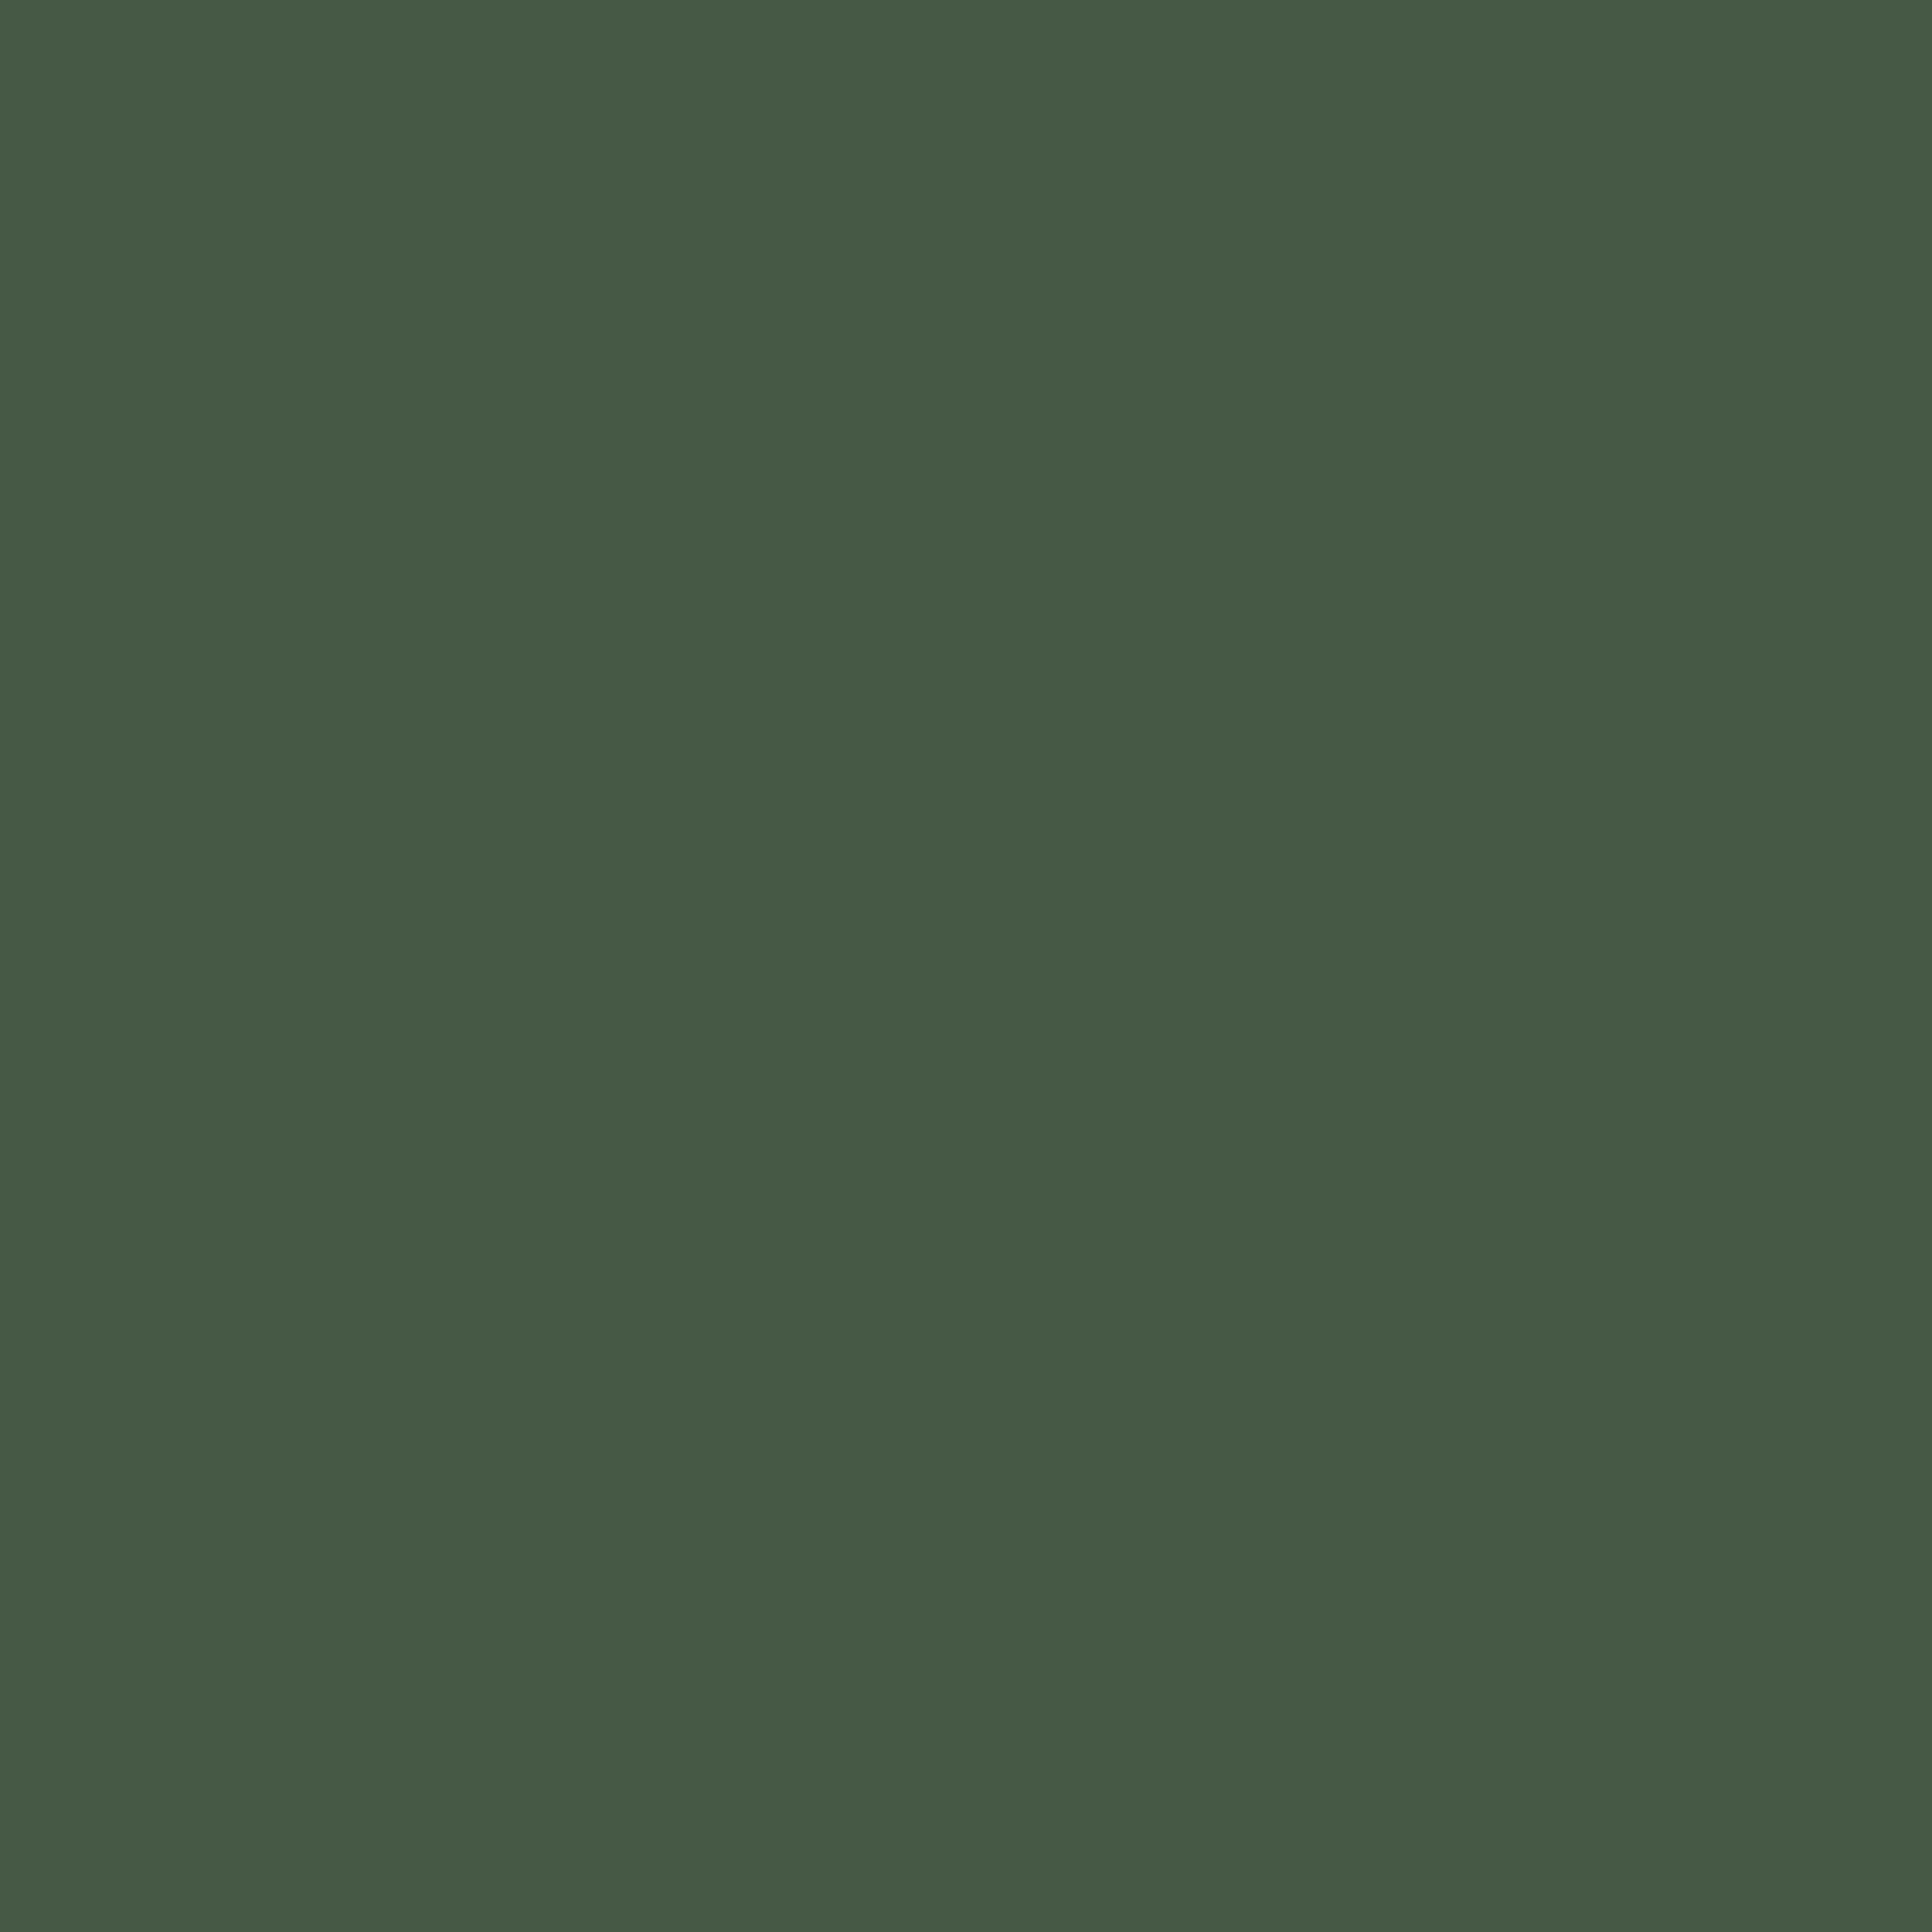 2048x2048 Gray-asparagus Solid Color Background